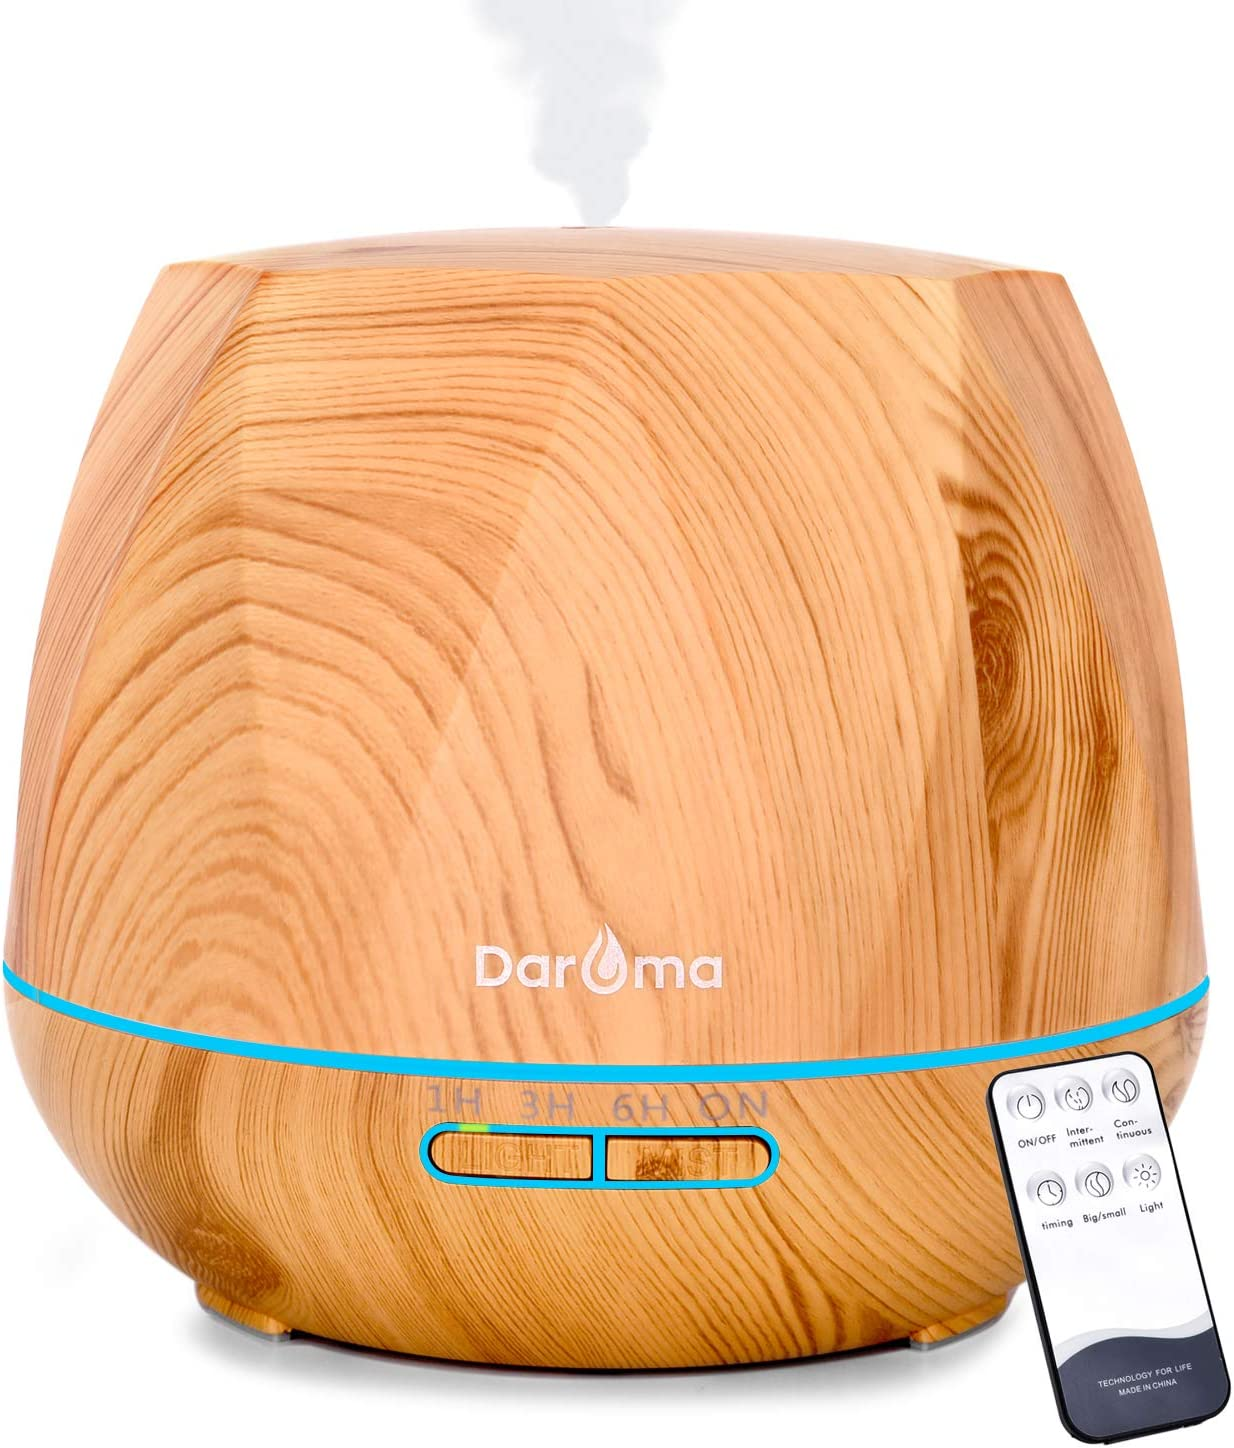 Amazon Com 550ml Essential Oil Diffuser Daroma Upgraded Remote Control 6 In 1 Aromatherapy Ultrasonic Cool Mist Humidifier 7 Color Changing Mood Lights Waterless Auto Off For Home Office Gift Light Wood Kitchen